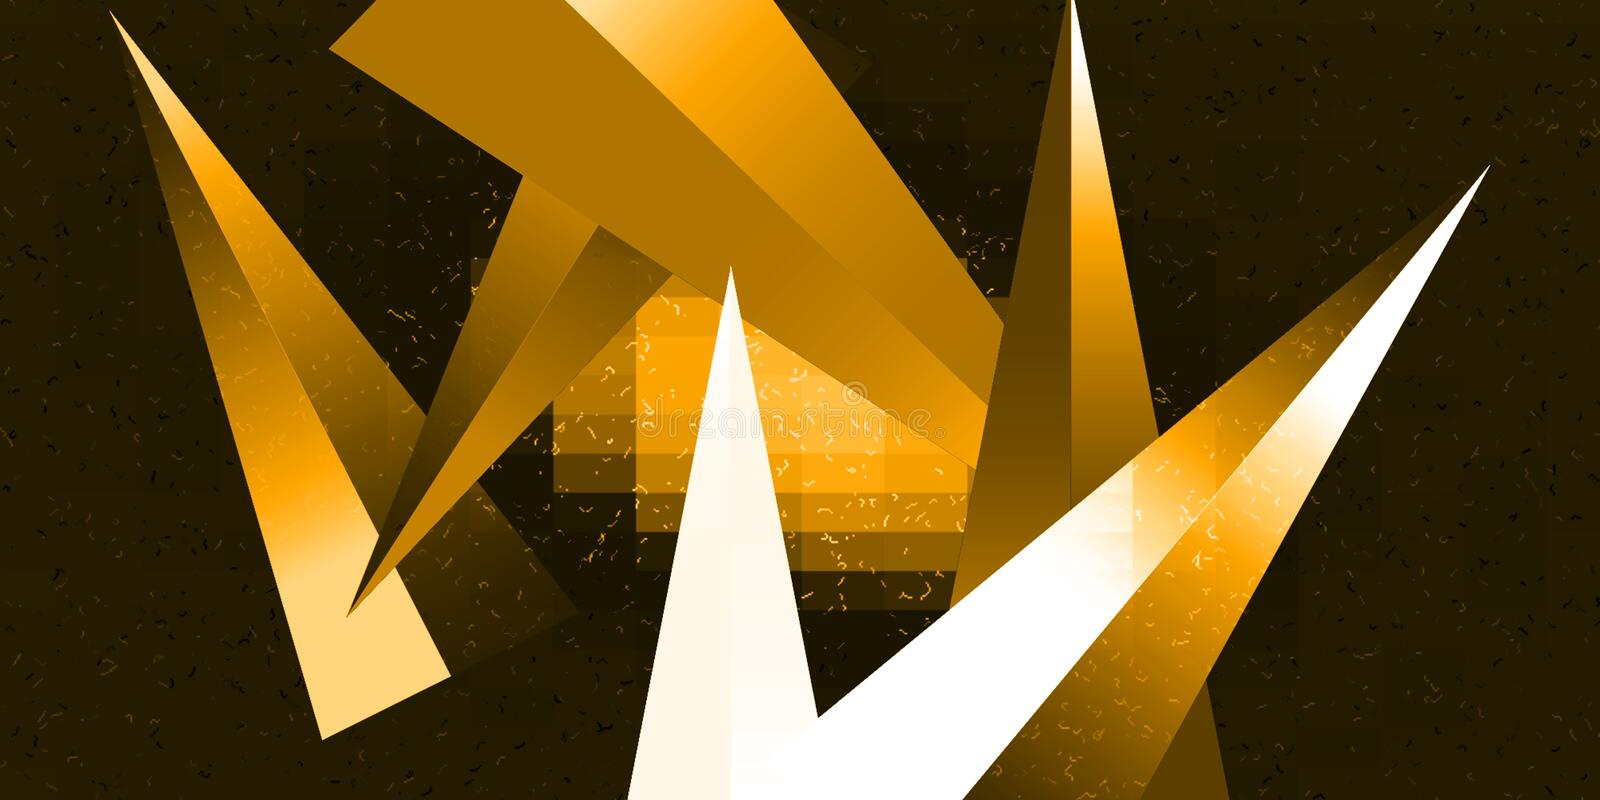 Golden color with  lighted and sparkling effect computer generated background  image for wallpaper design royalty free illustration